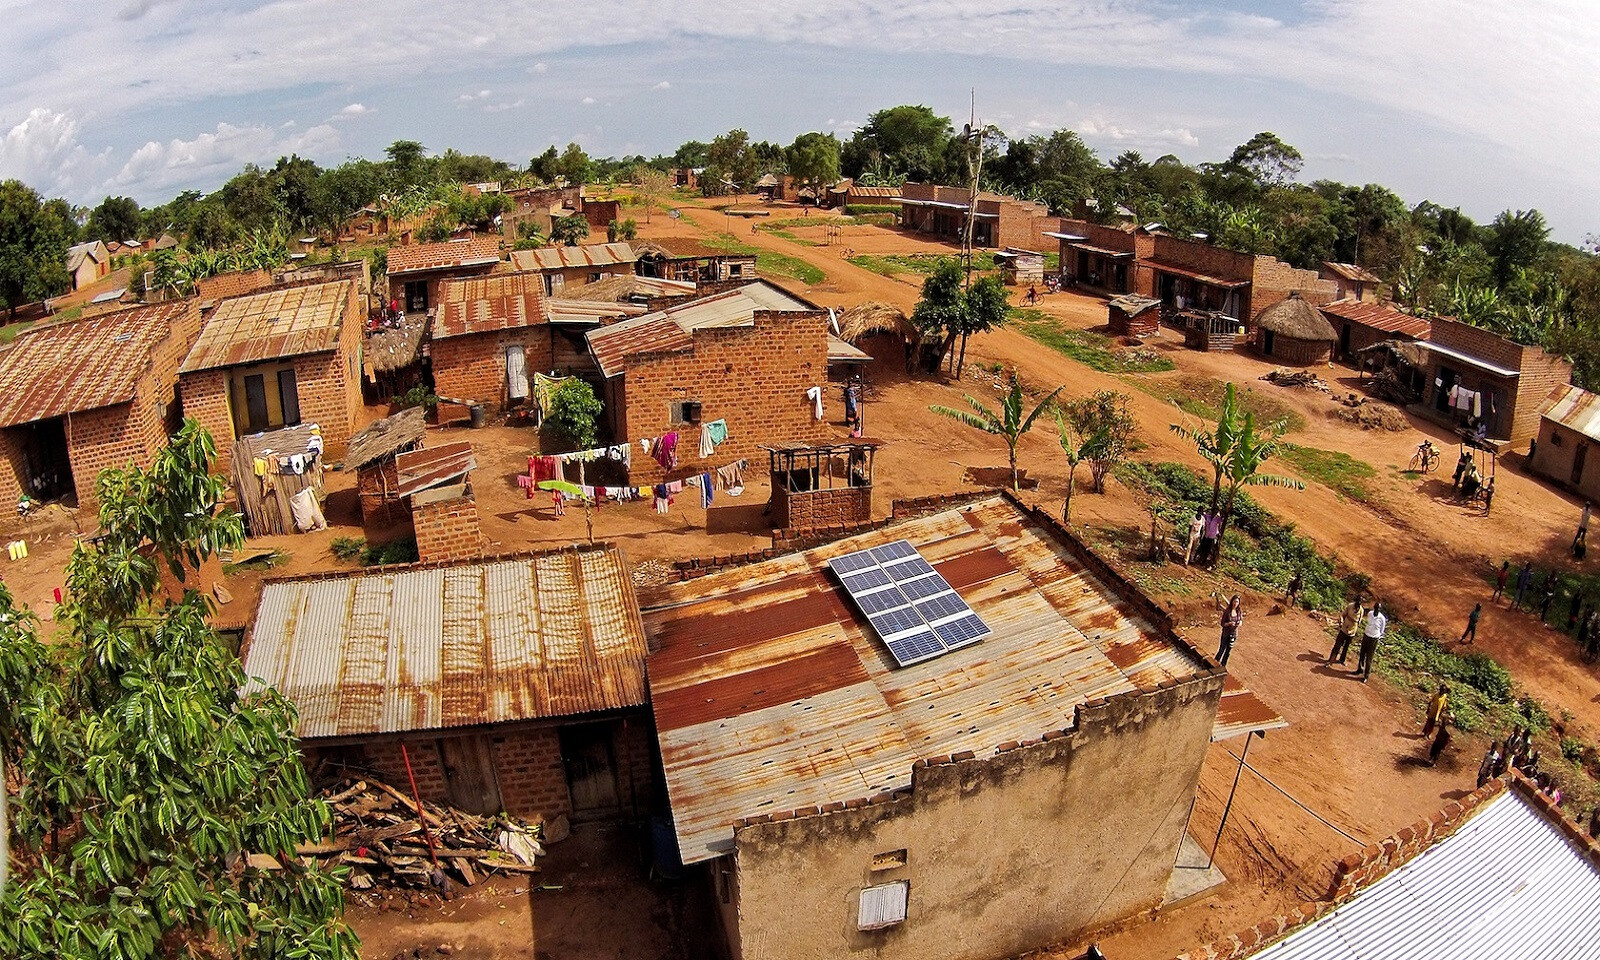 How Experian Helped to Bring Light to a Remote Village